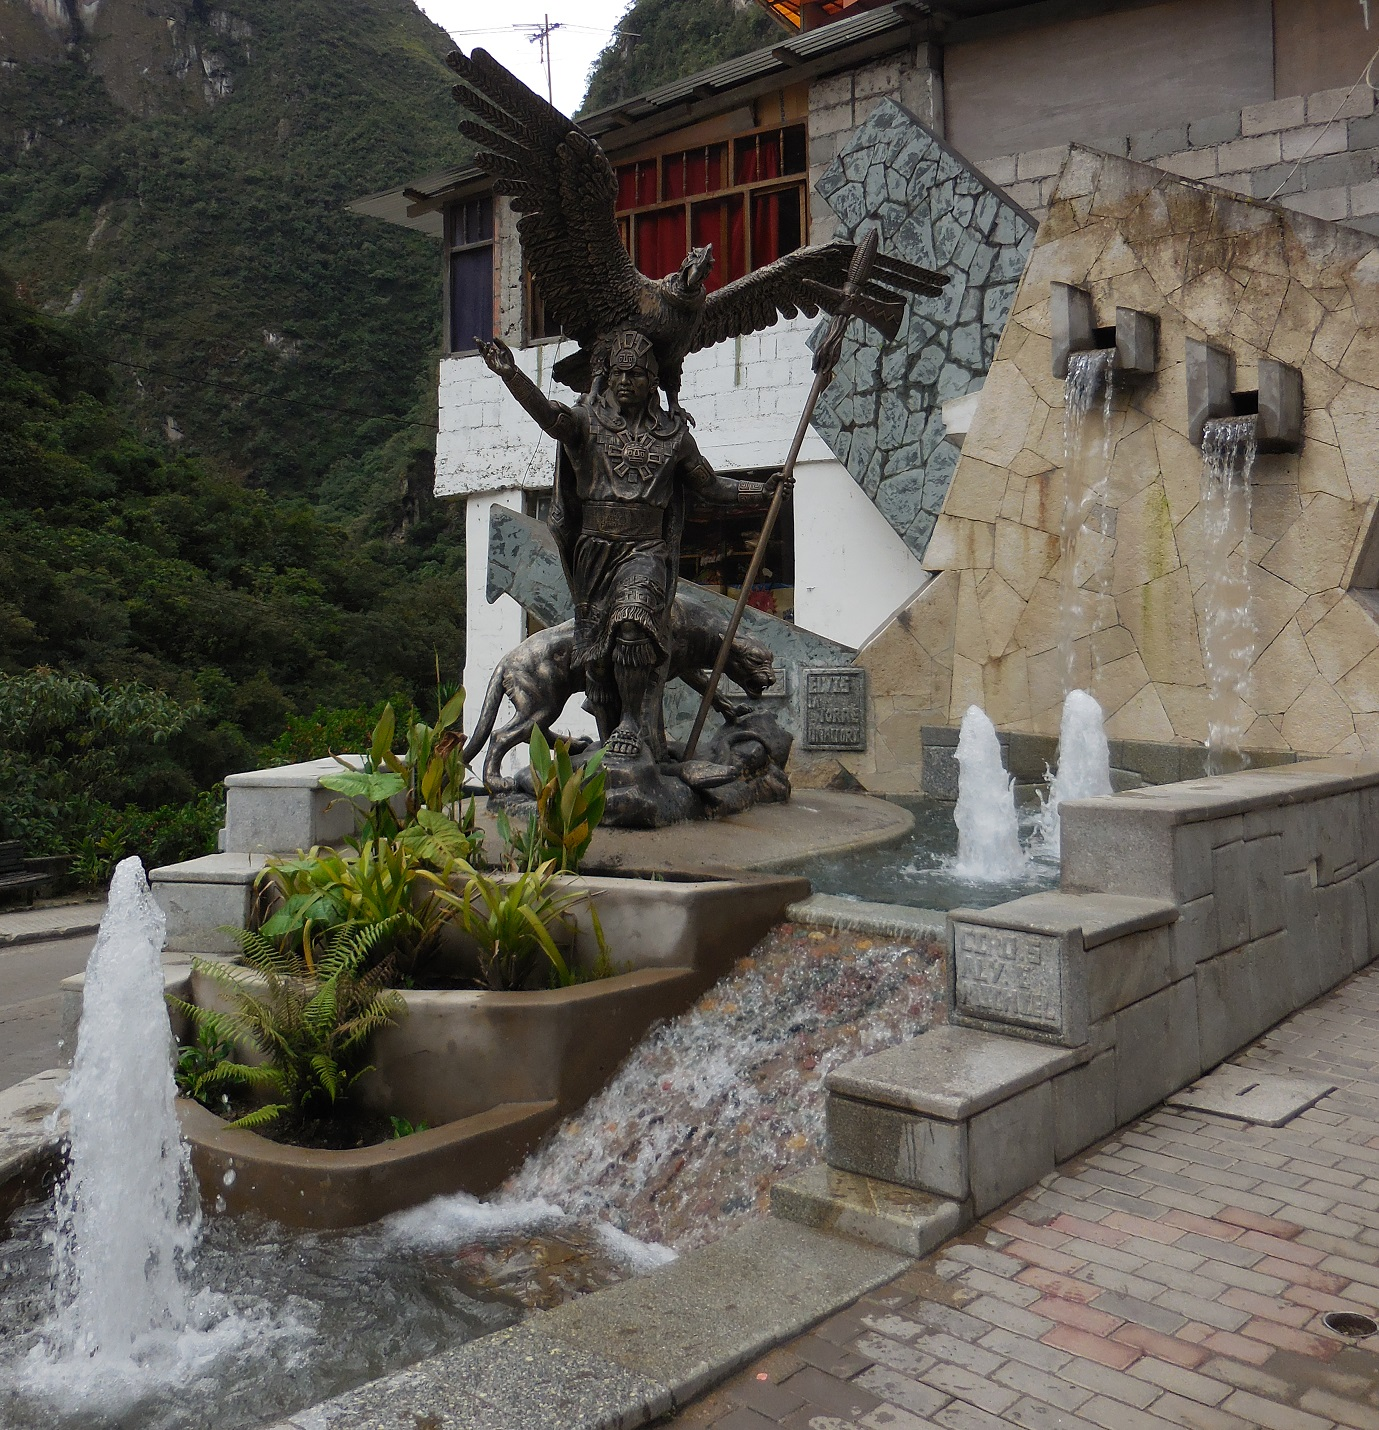 Fountain in Aguas Calientes